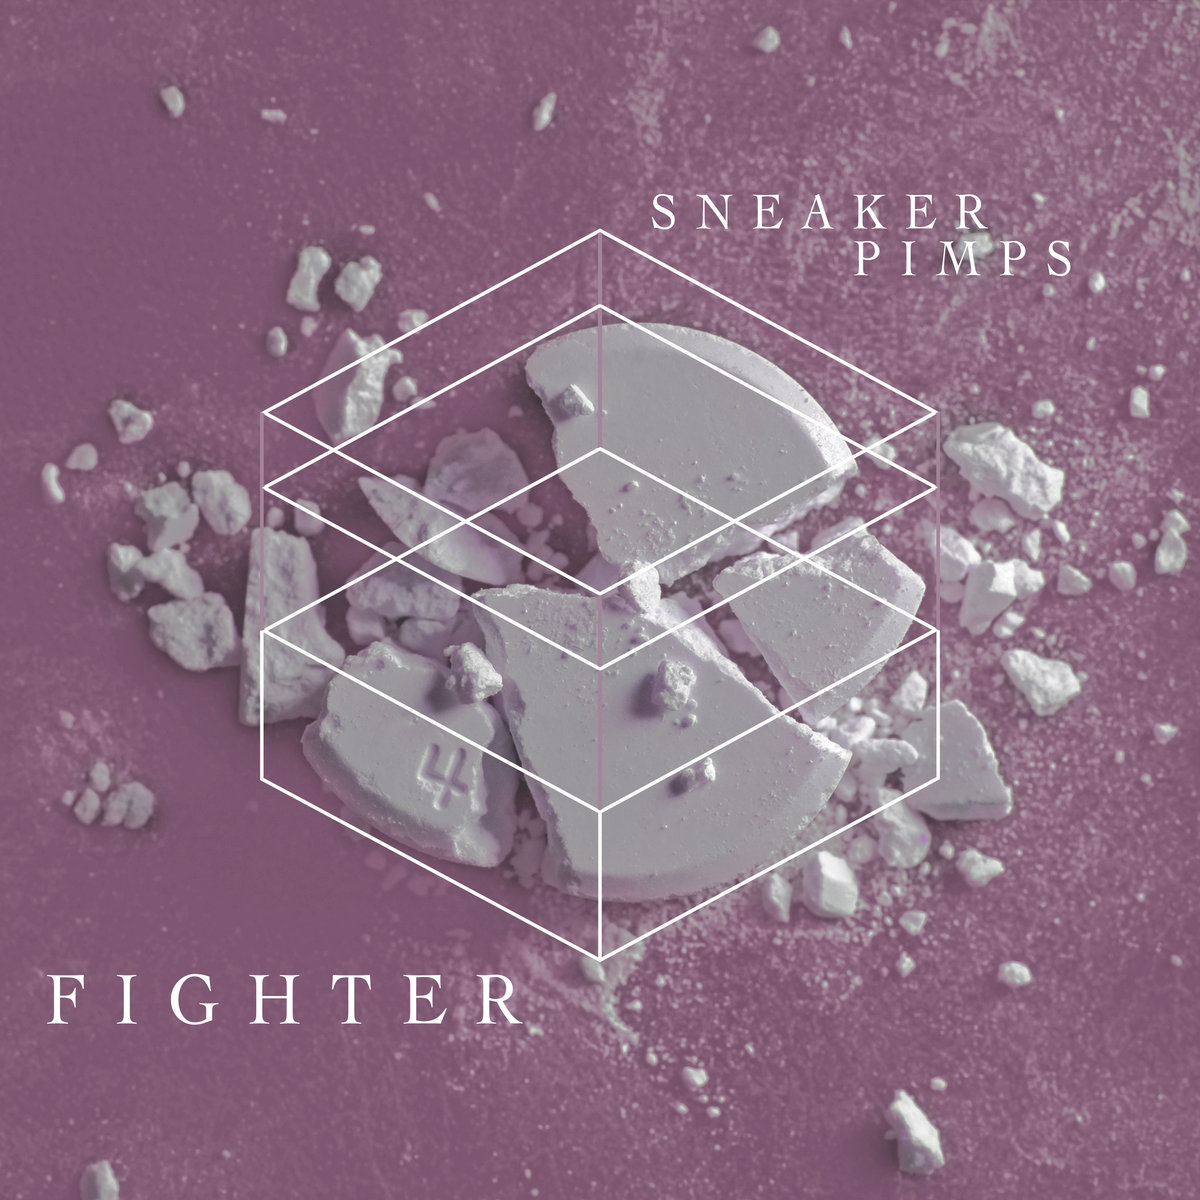 Electro News @ – Sneaker Pimps – Fighter